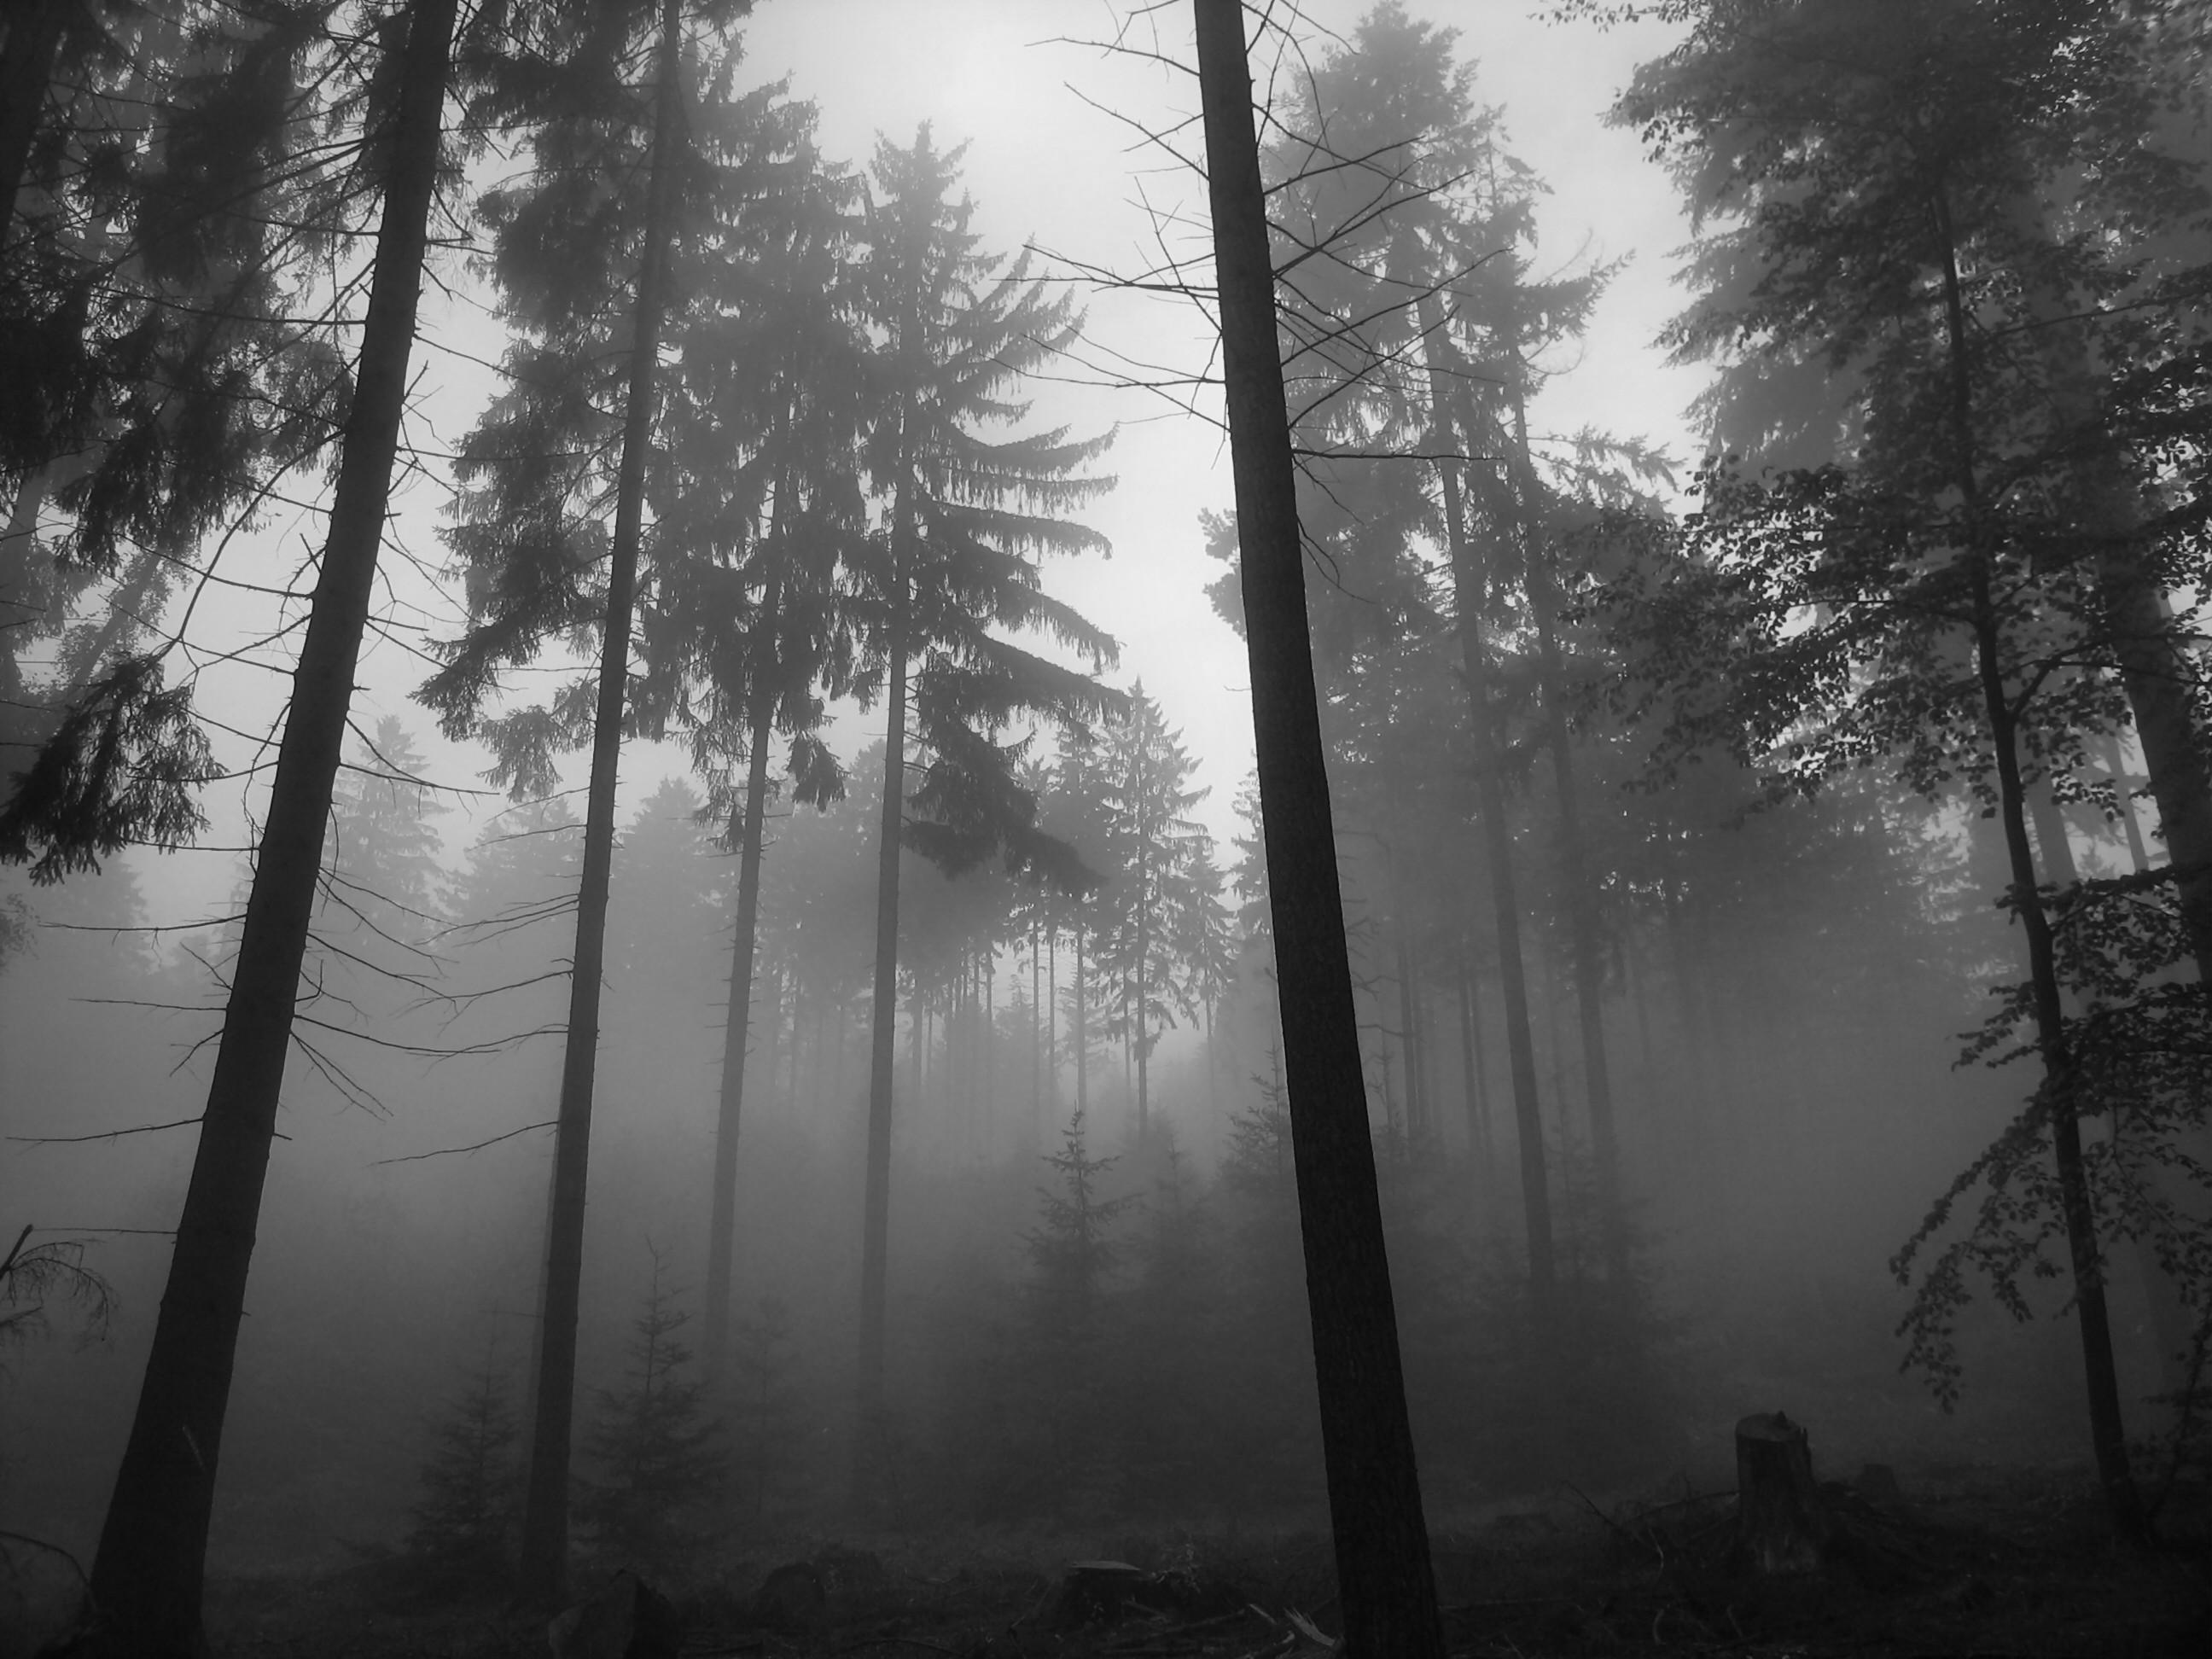 Dark Forest Grayscale 2150 HD Pictures | The Best HD Picture